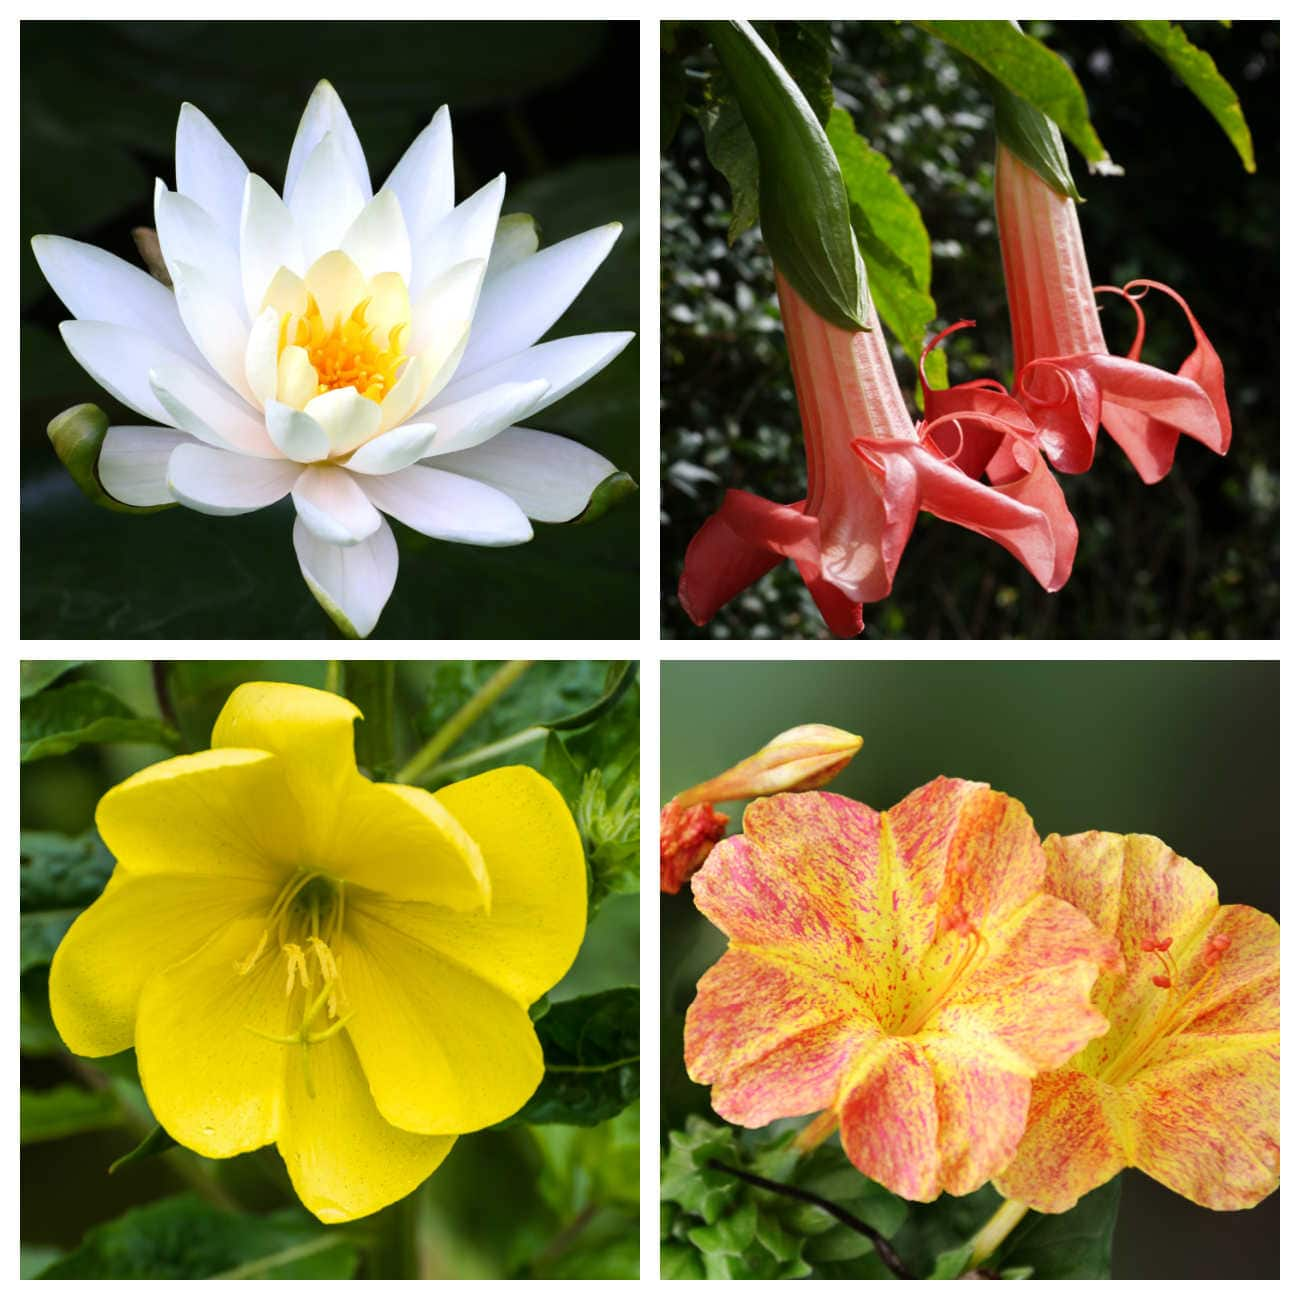 collage of 4 flowers - night blooming water lily, Brugmansia, four o'clocks, evening primrose.,